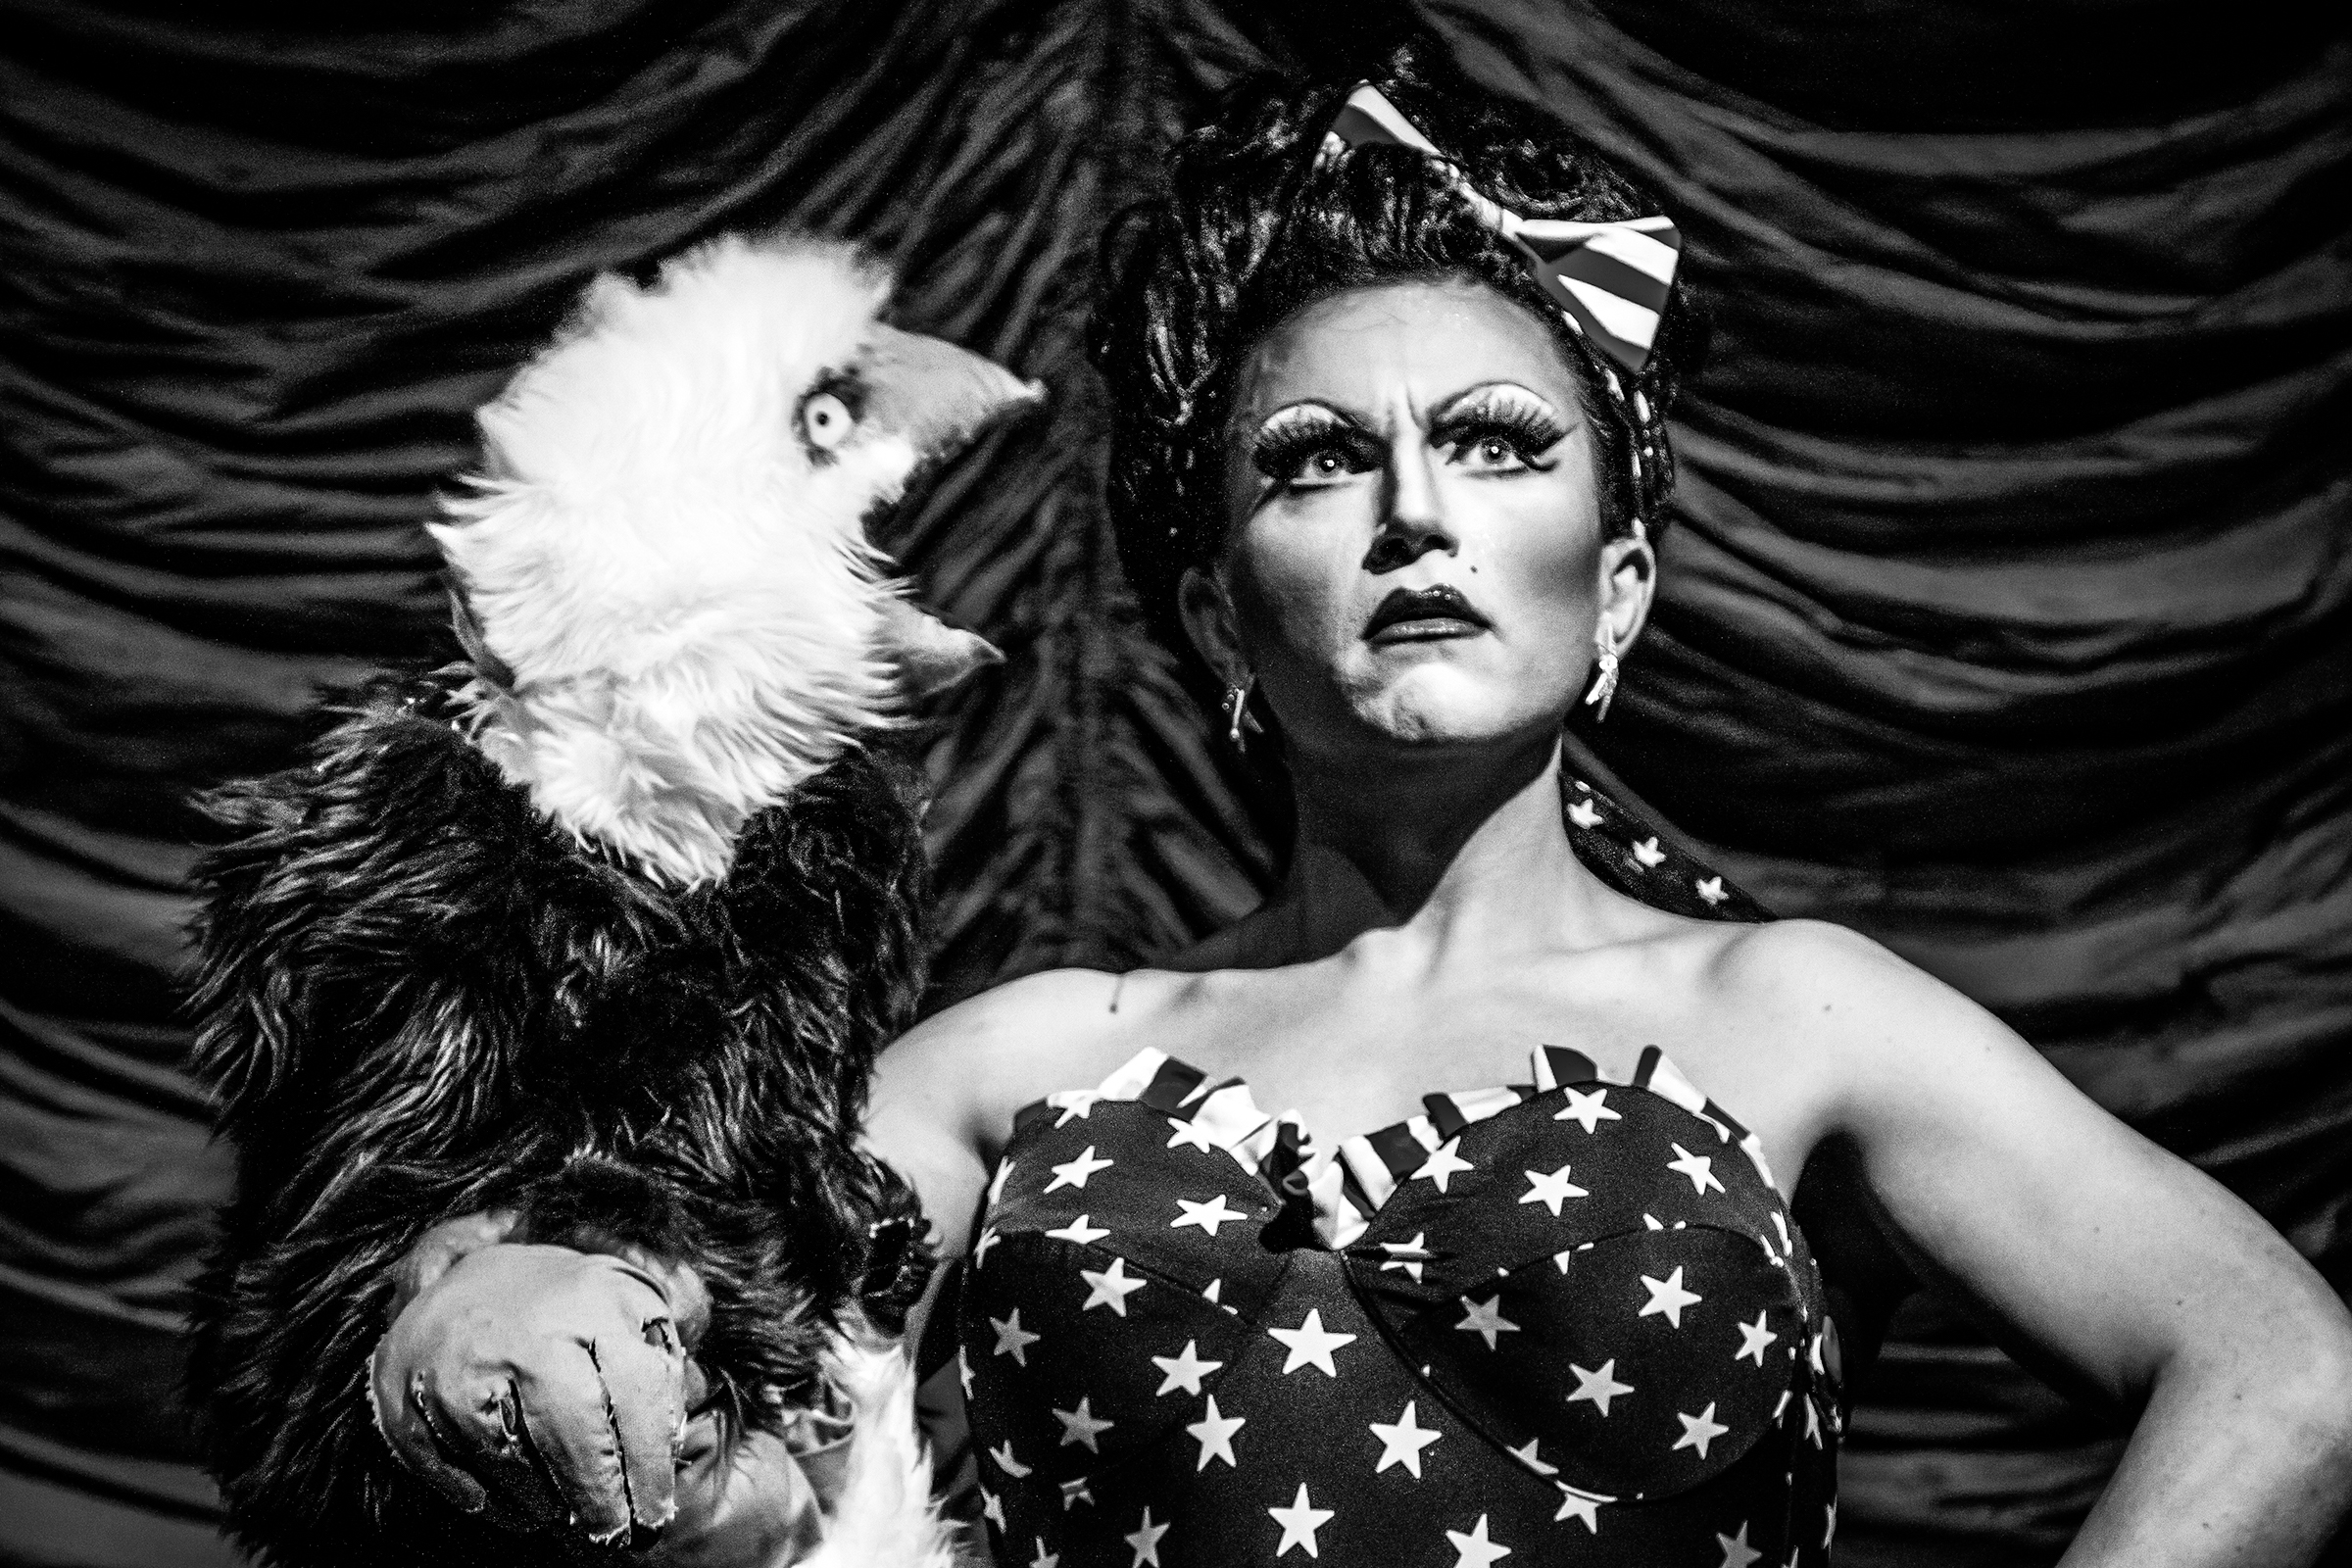 """Ben Delacreme gets lectured by a bald eagle during Freedom Fantasia, """"a liberty-encrusted, justice-soaked, apple-pie-scented pageant of patriotism,"""" at The Triple Door on July 3rd, 2012, in Seattle. The popular drag performer went on to win Miss Congeniality in the sixth season of Logo's Rupaul's Drag Race in 2014."""